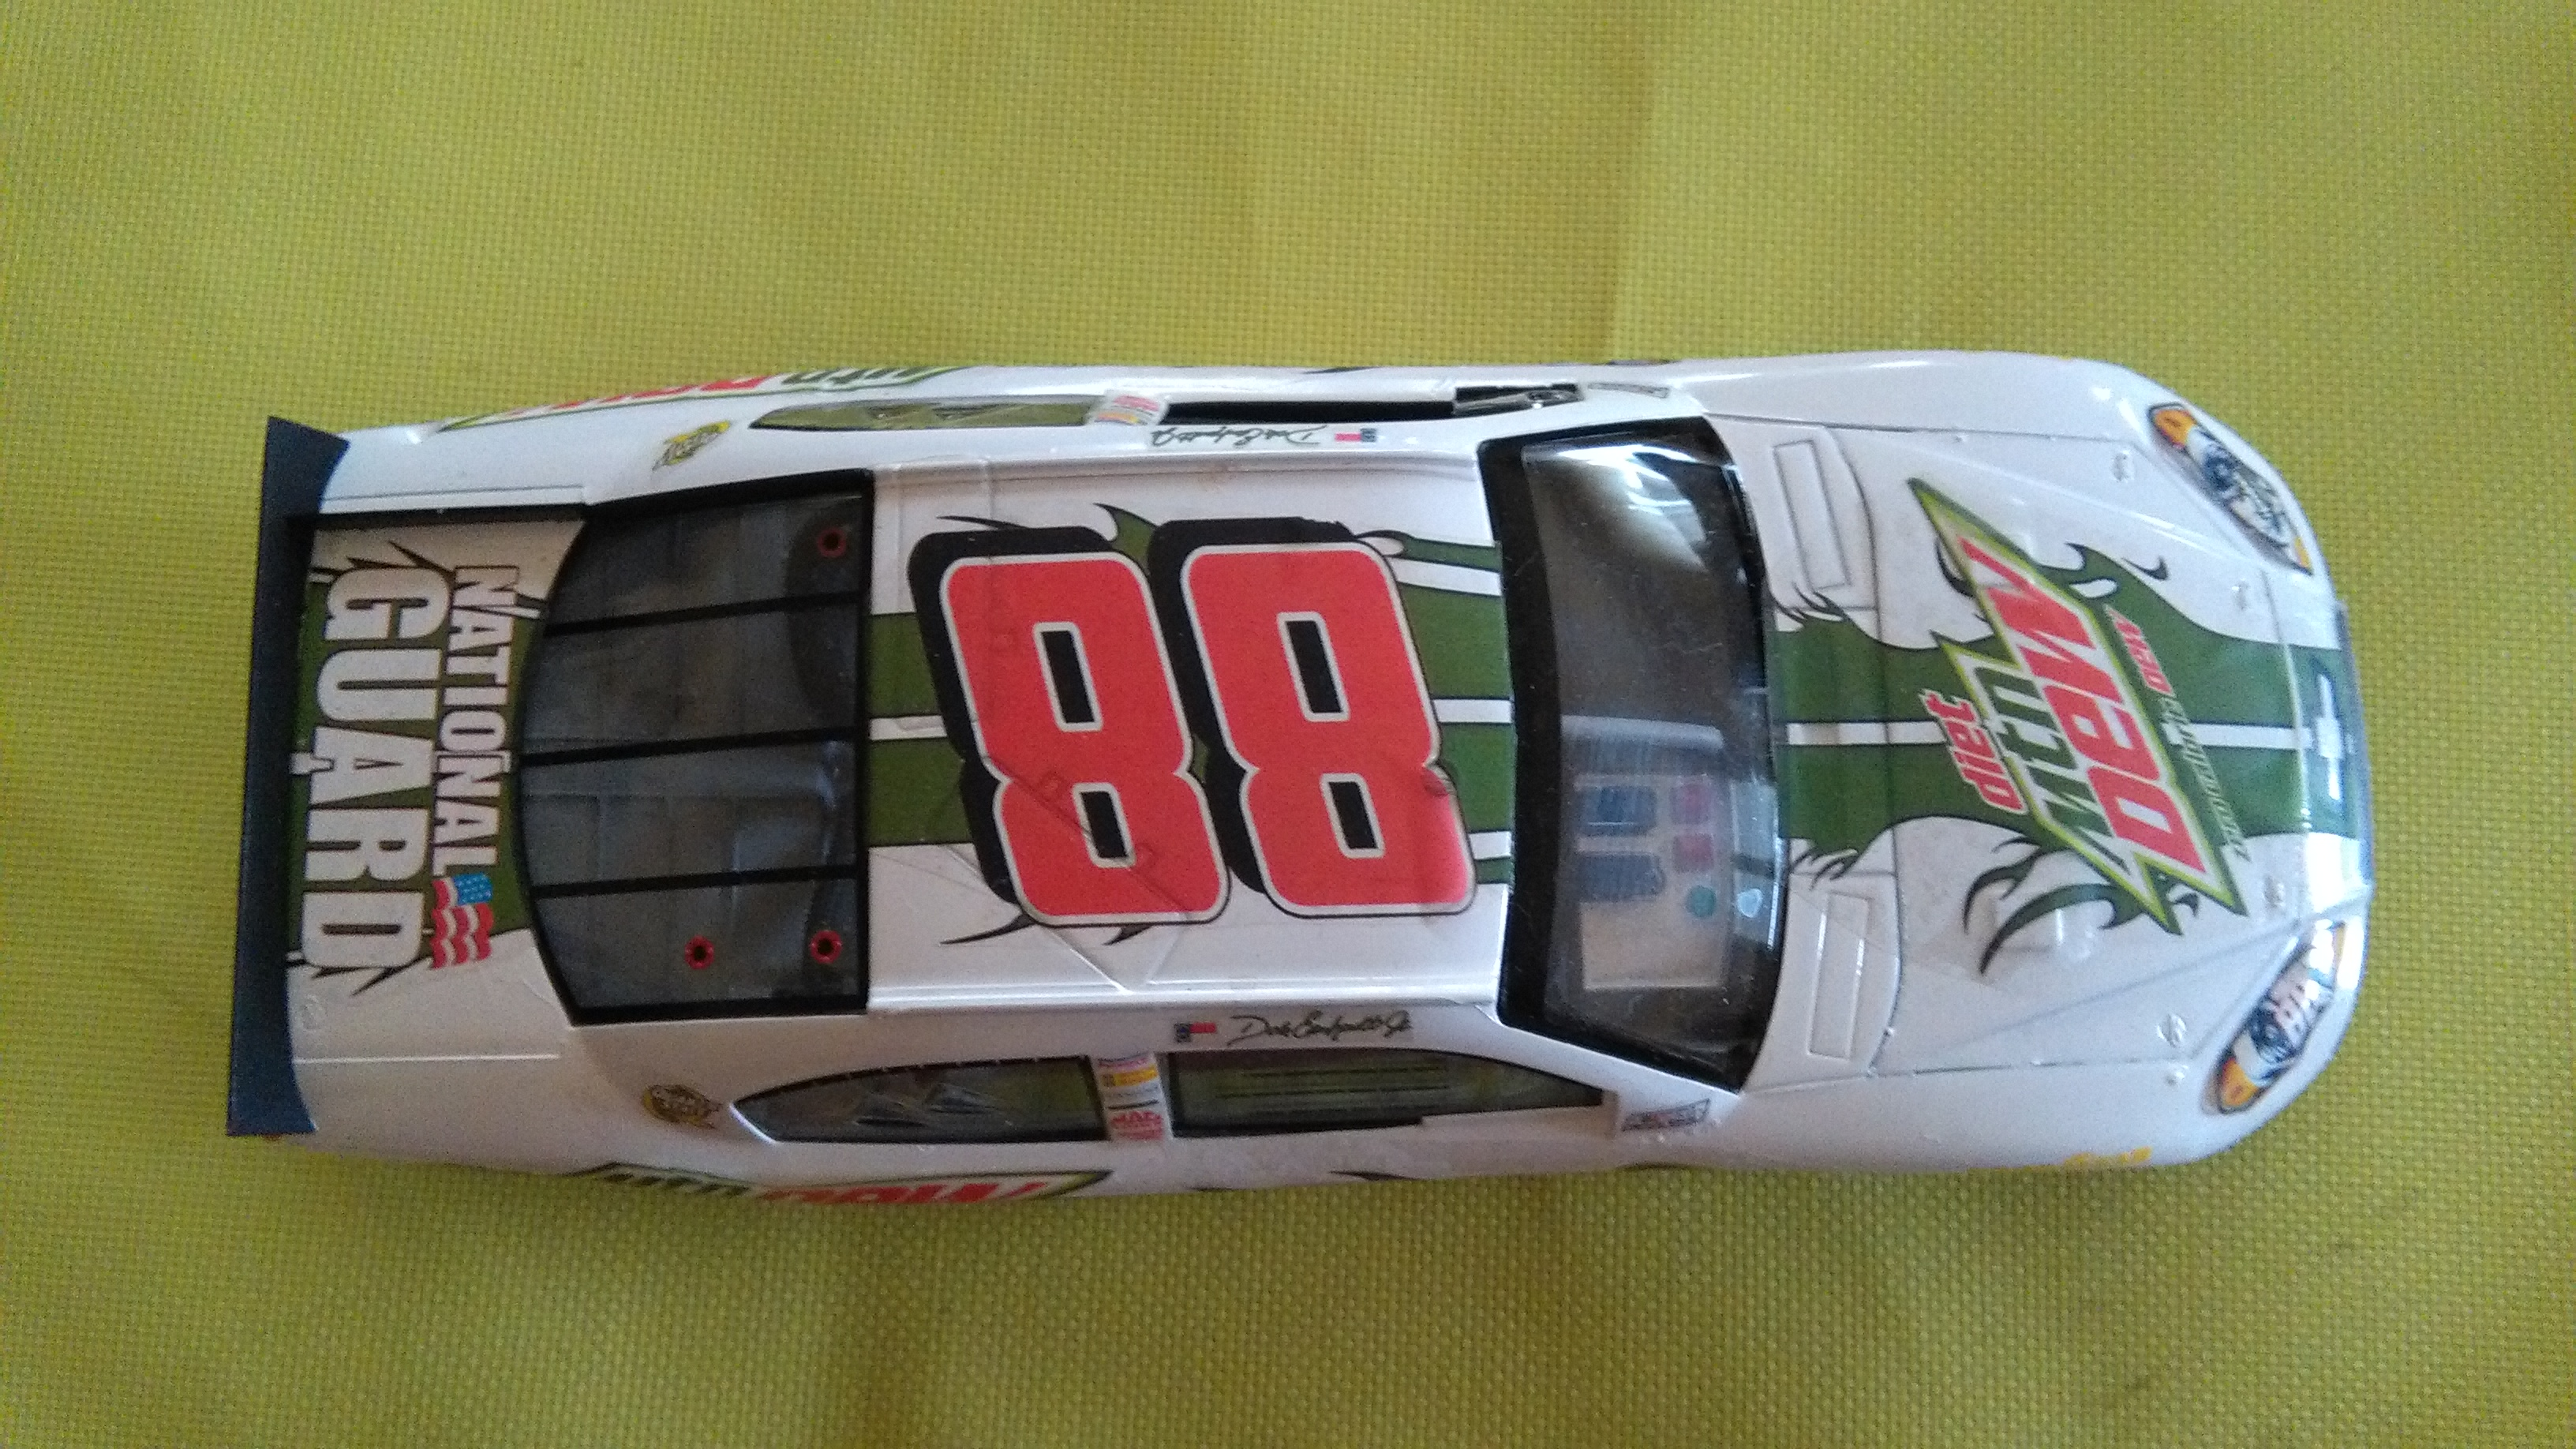 Chevy Impala 2010 #88 Earnhardt jr Mountain dew diet 775517IMG20160320150429